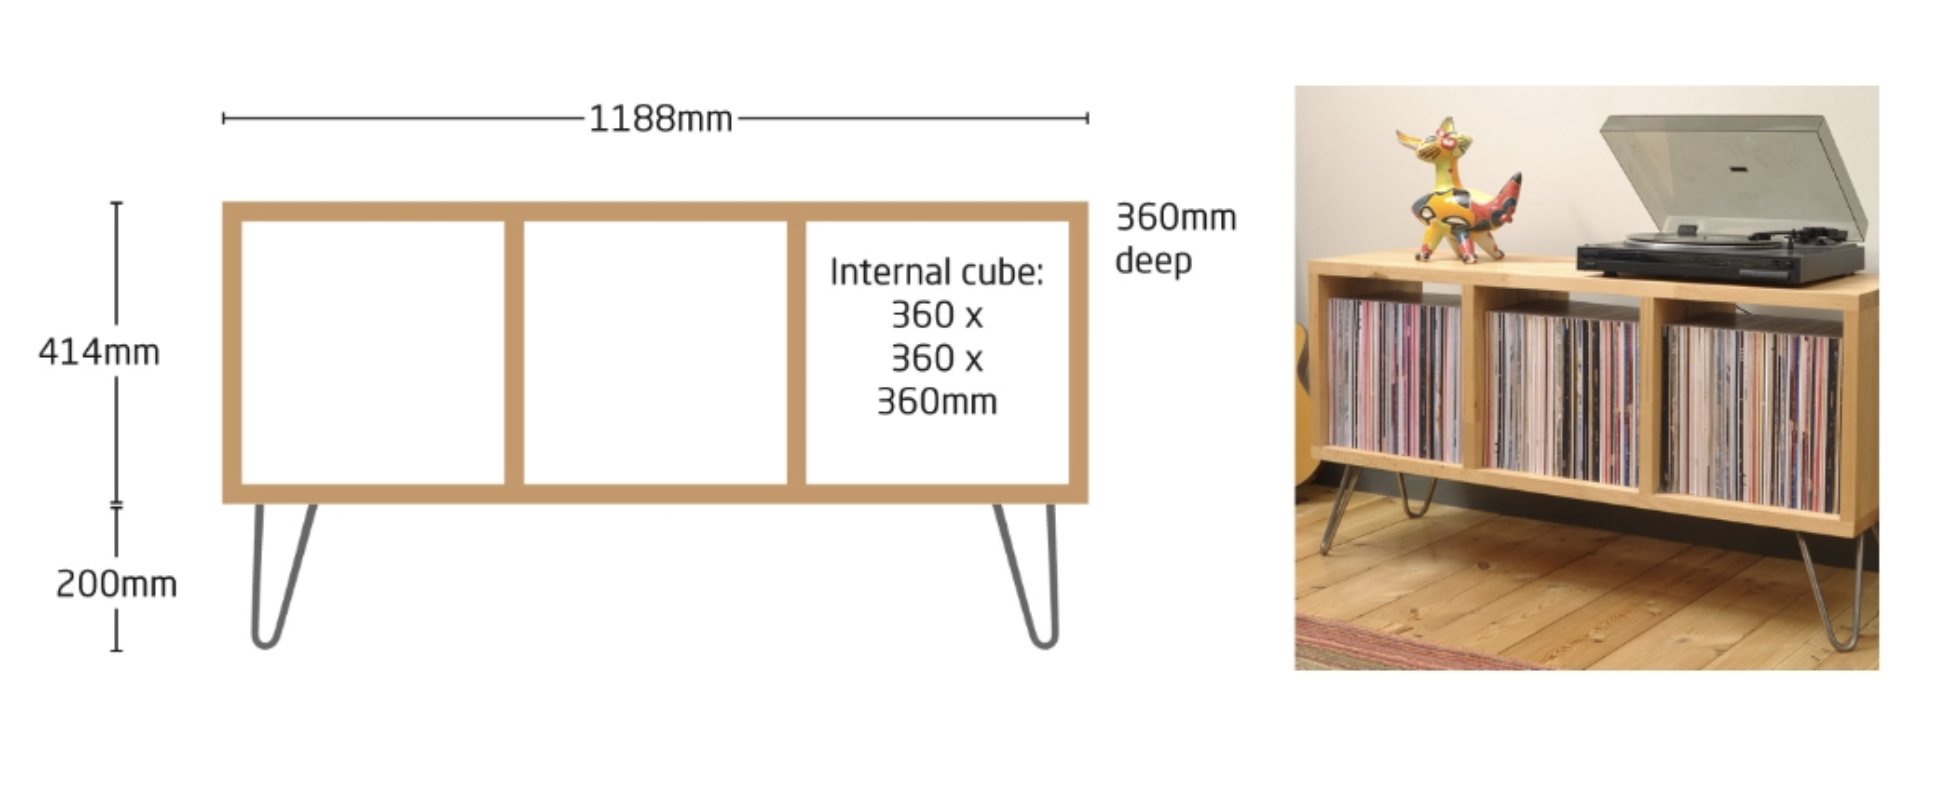 Cubed 'Trio'. Price in solid beech with hairpin legs £545.  Add a back for £85 and/or a cable tidy for £55.